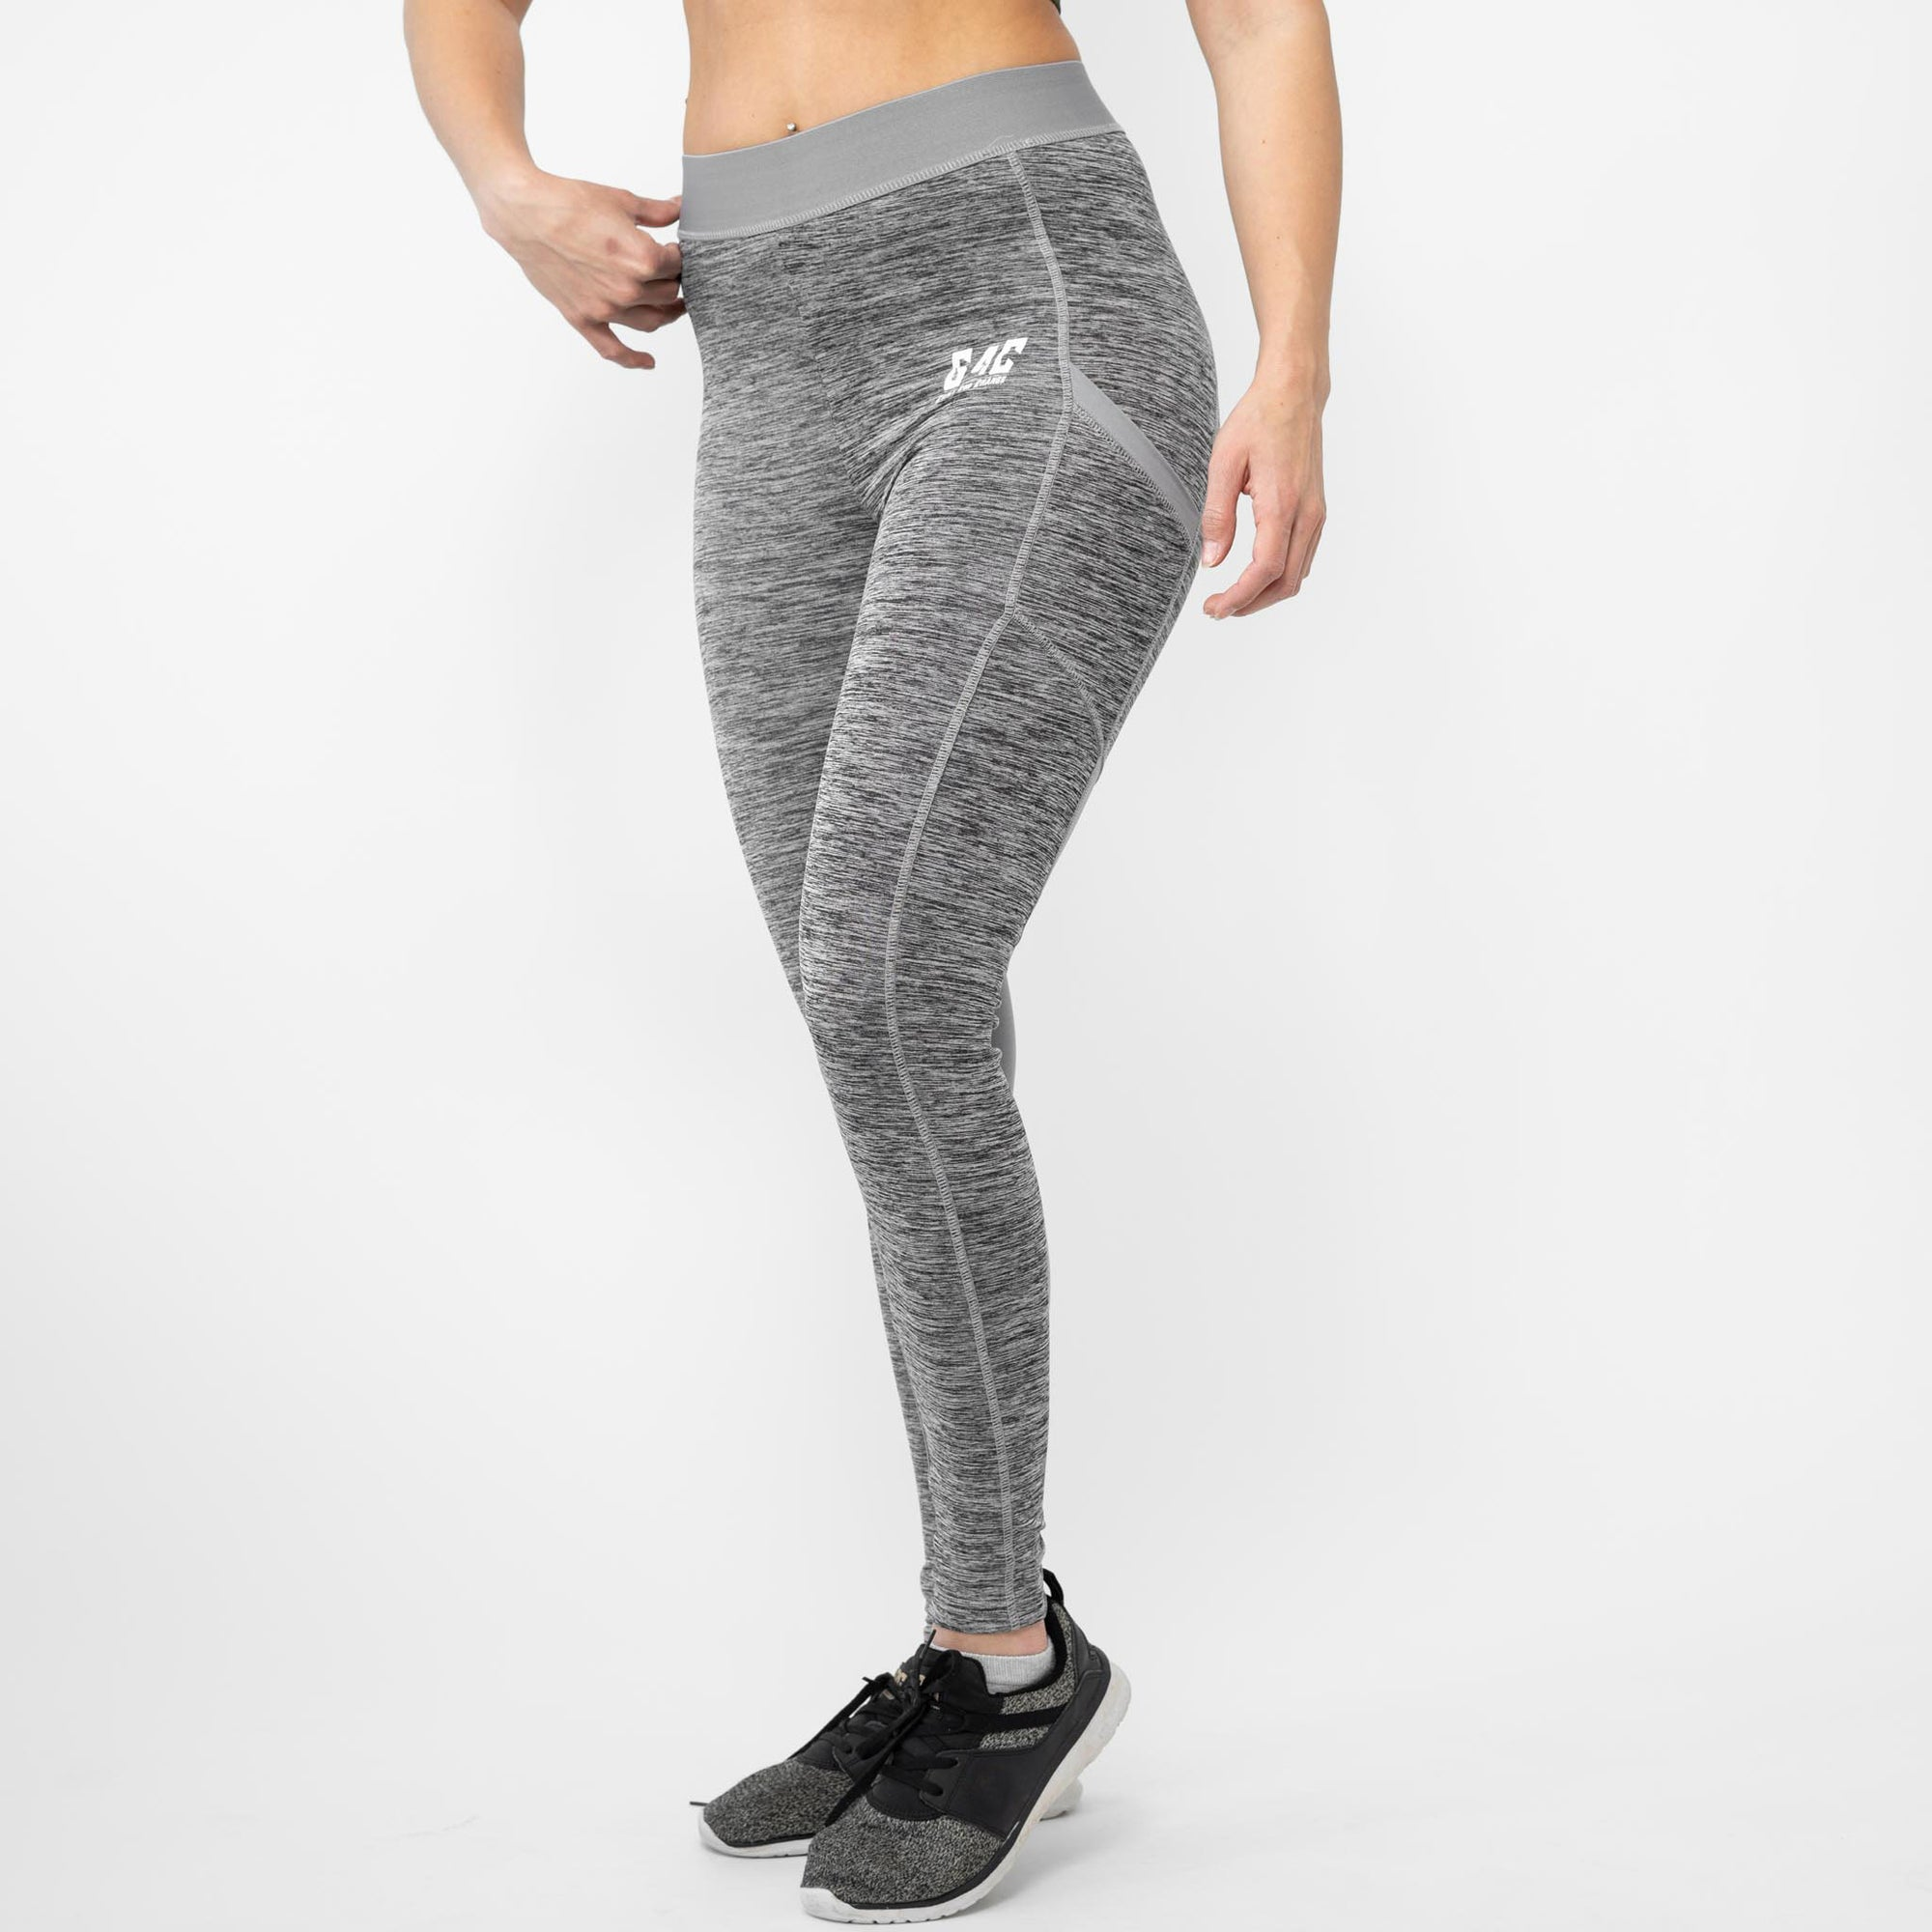 Gainz4Change Legacy Leggings Grey Melange - Gainz4Change